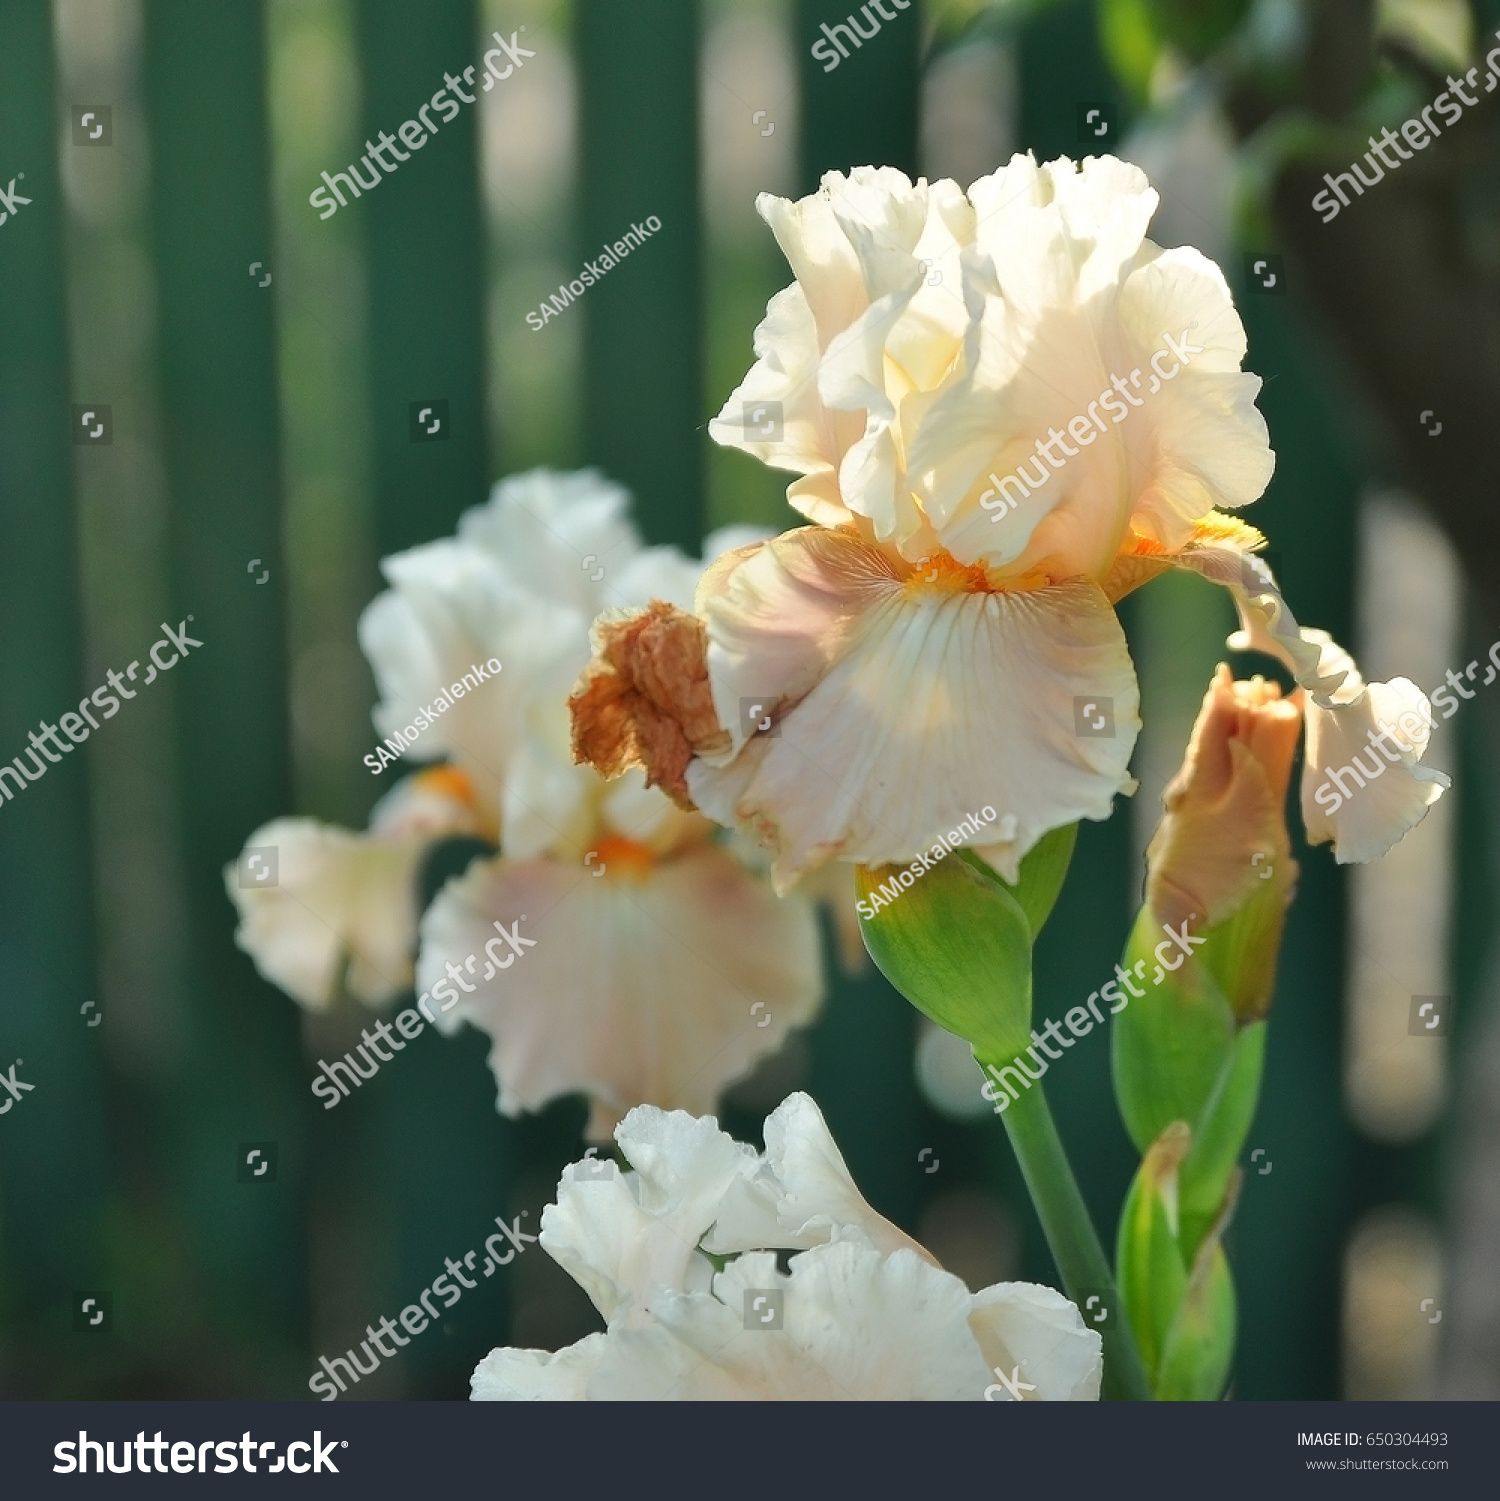 White iris flowers macro on natural stock photo edit now 650304493 white iris flowers macro on natural green background gentle creamy flower de luce close up izmirmasajfo